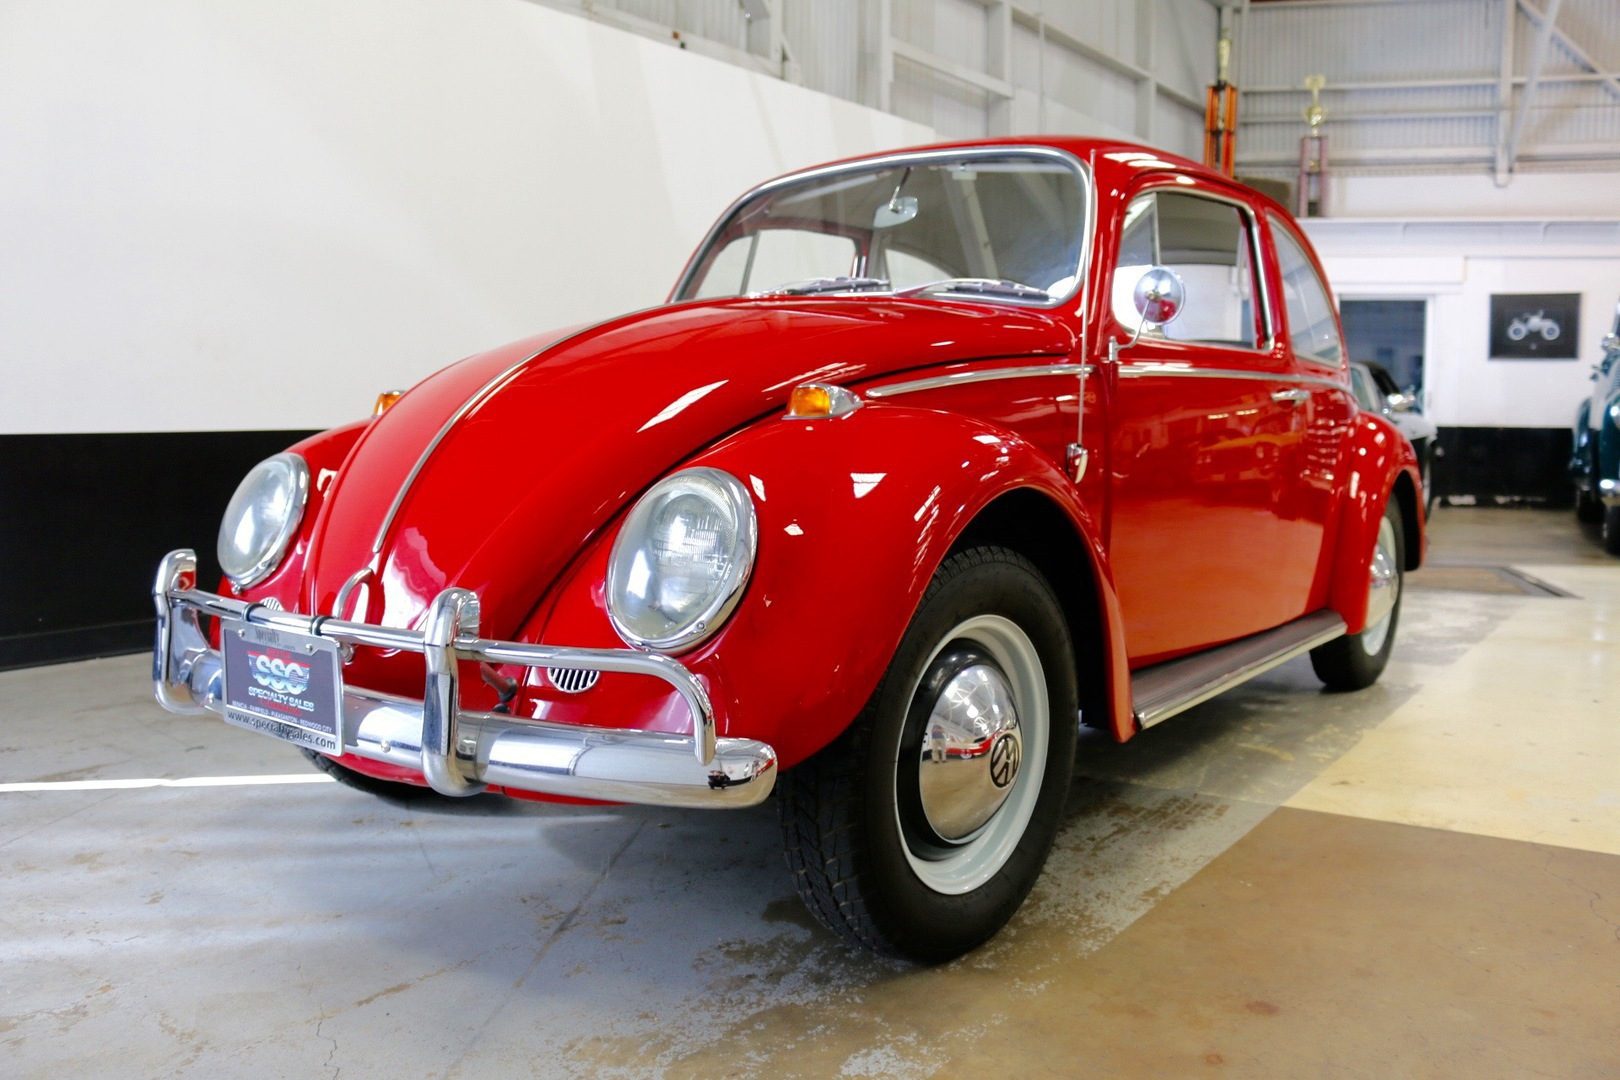 used volkswagen beetle for sale sacramento ca page 2 autos post. Black Bedroom Furniture Sets. Home Design Ideas